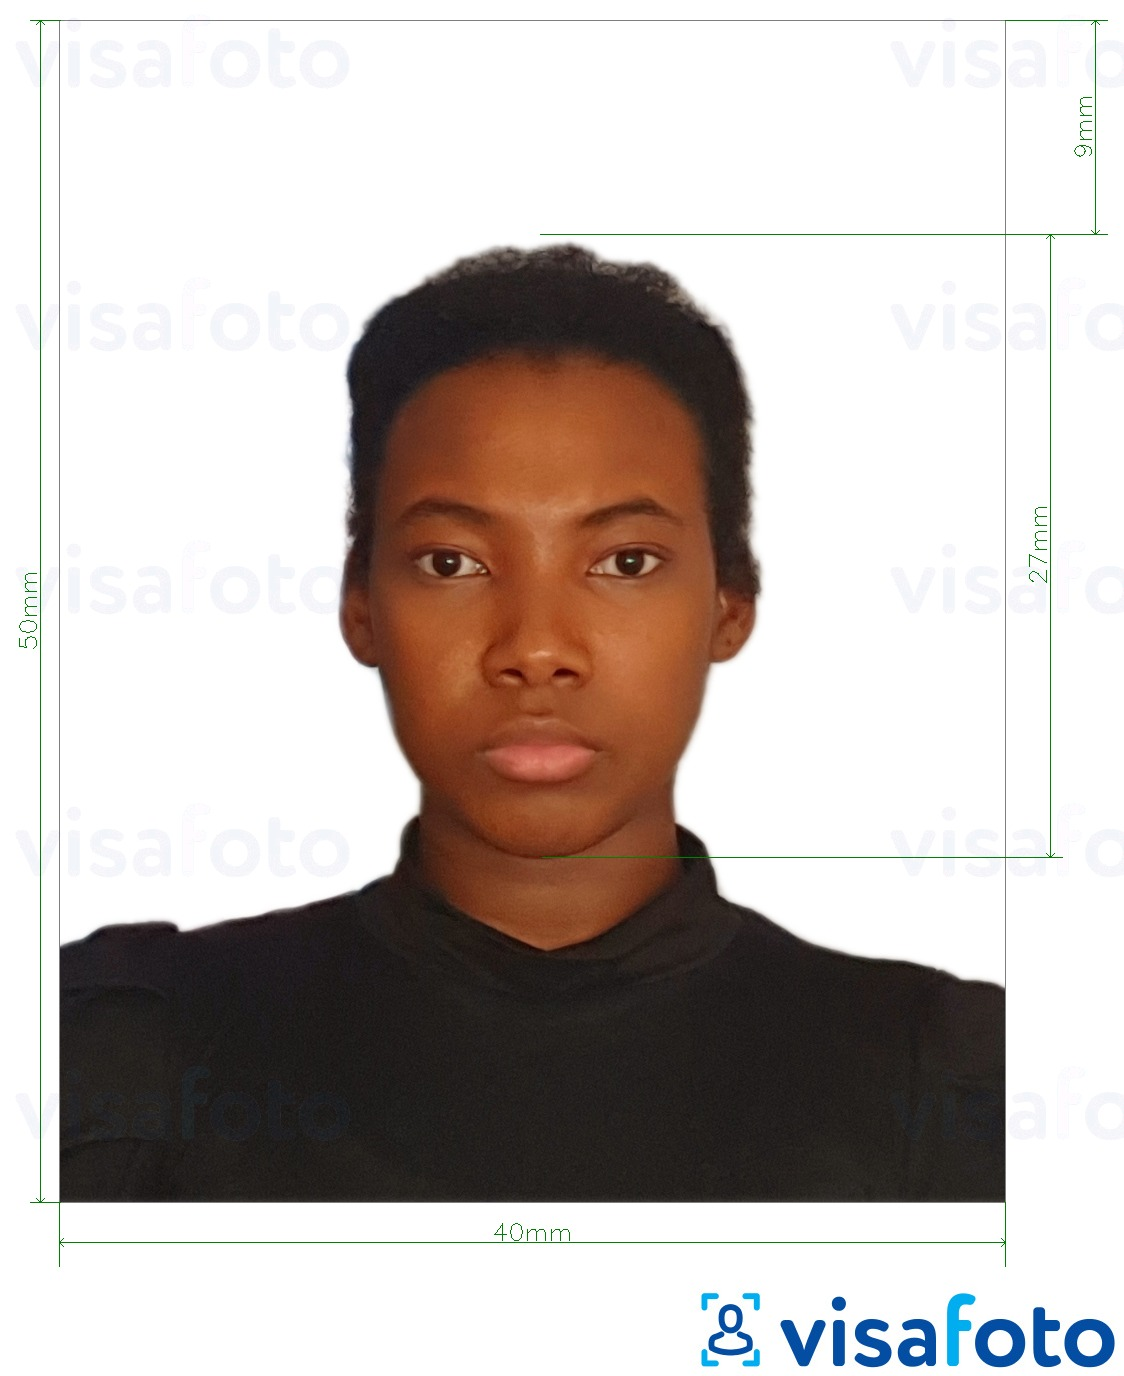 Example of photo for Colombia ID card 4x5 cm with exact size specification